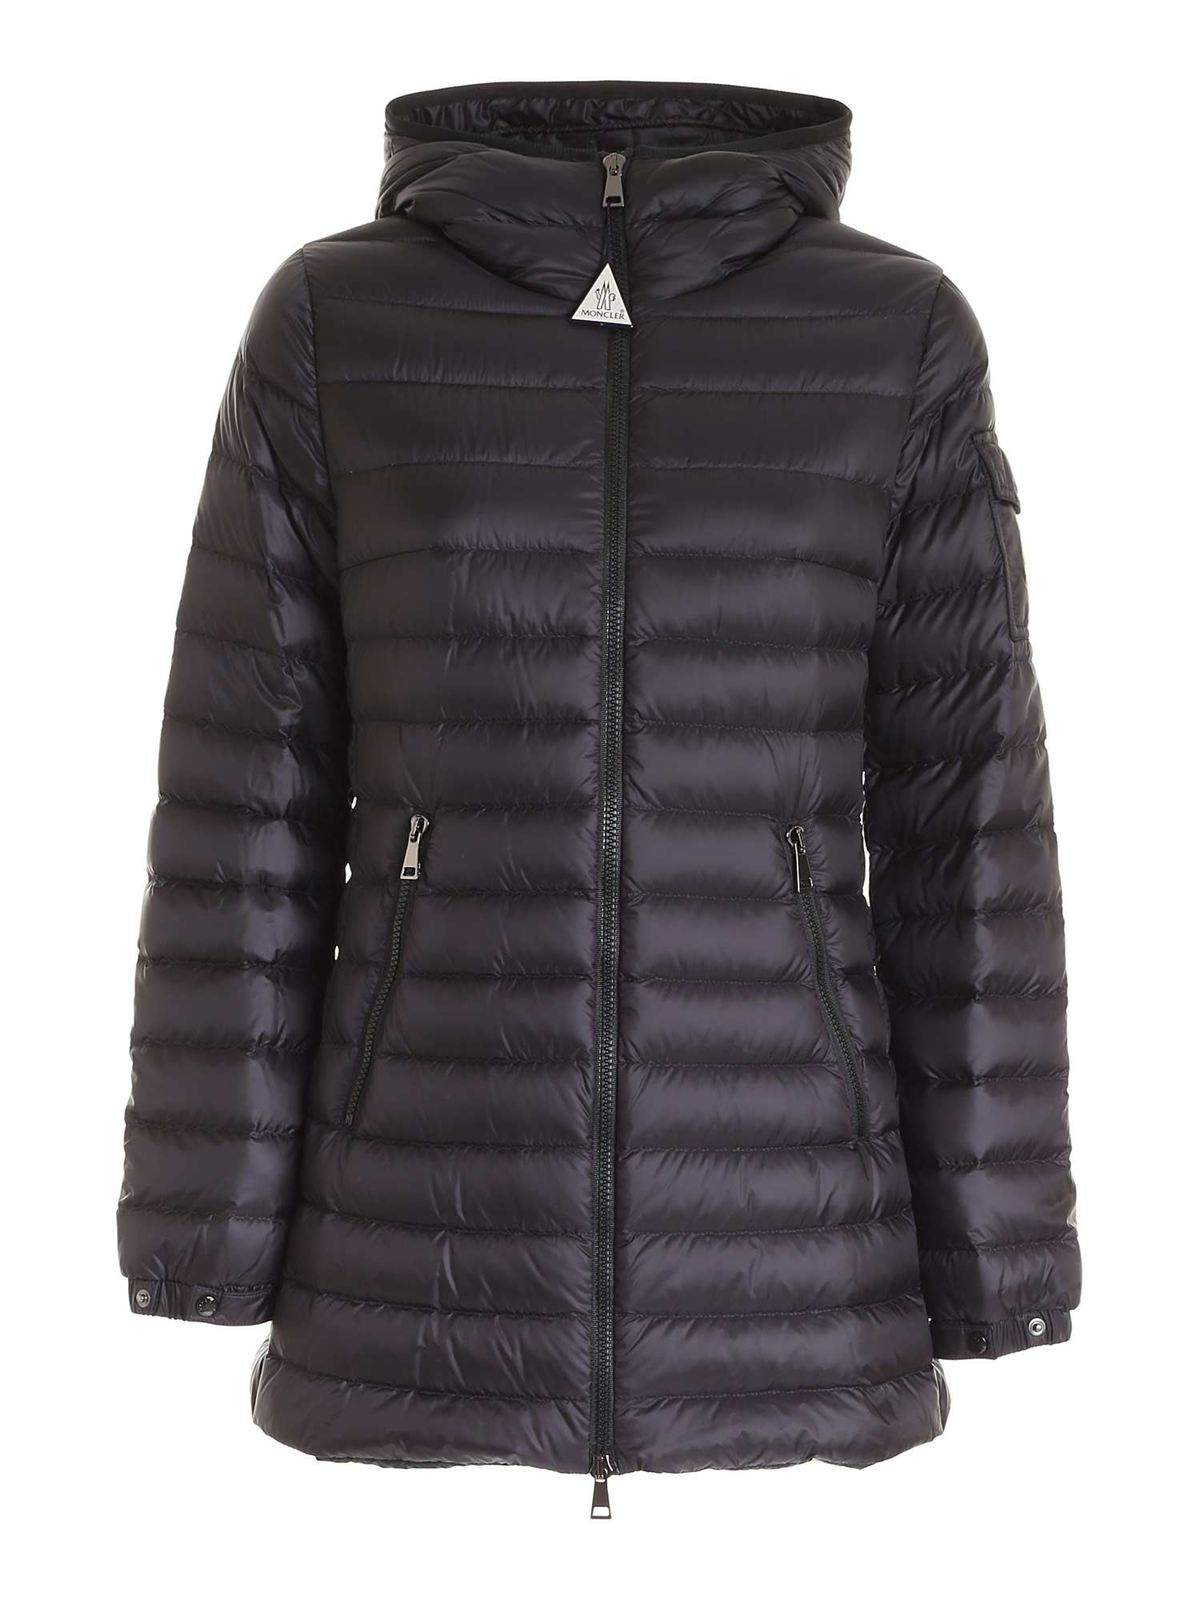 MONCLER MENTS QUILTED DOWN JACKET IN BLACK